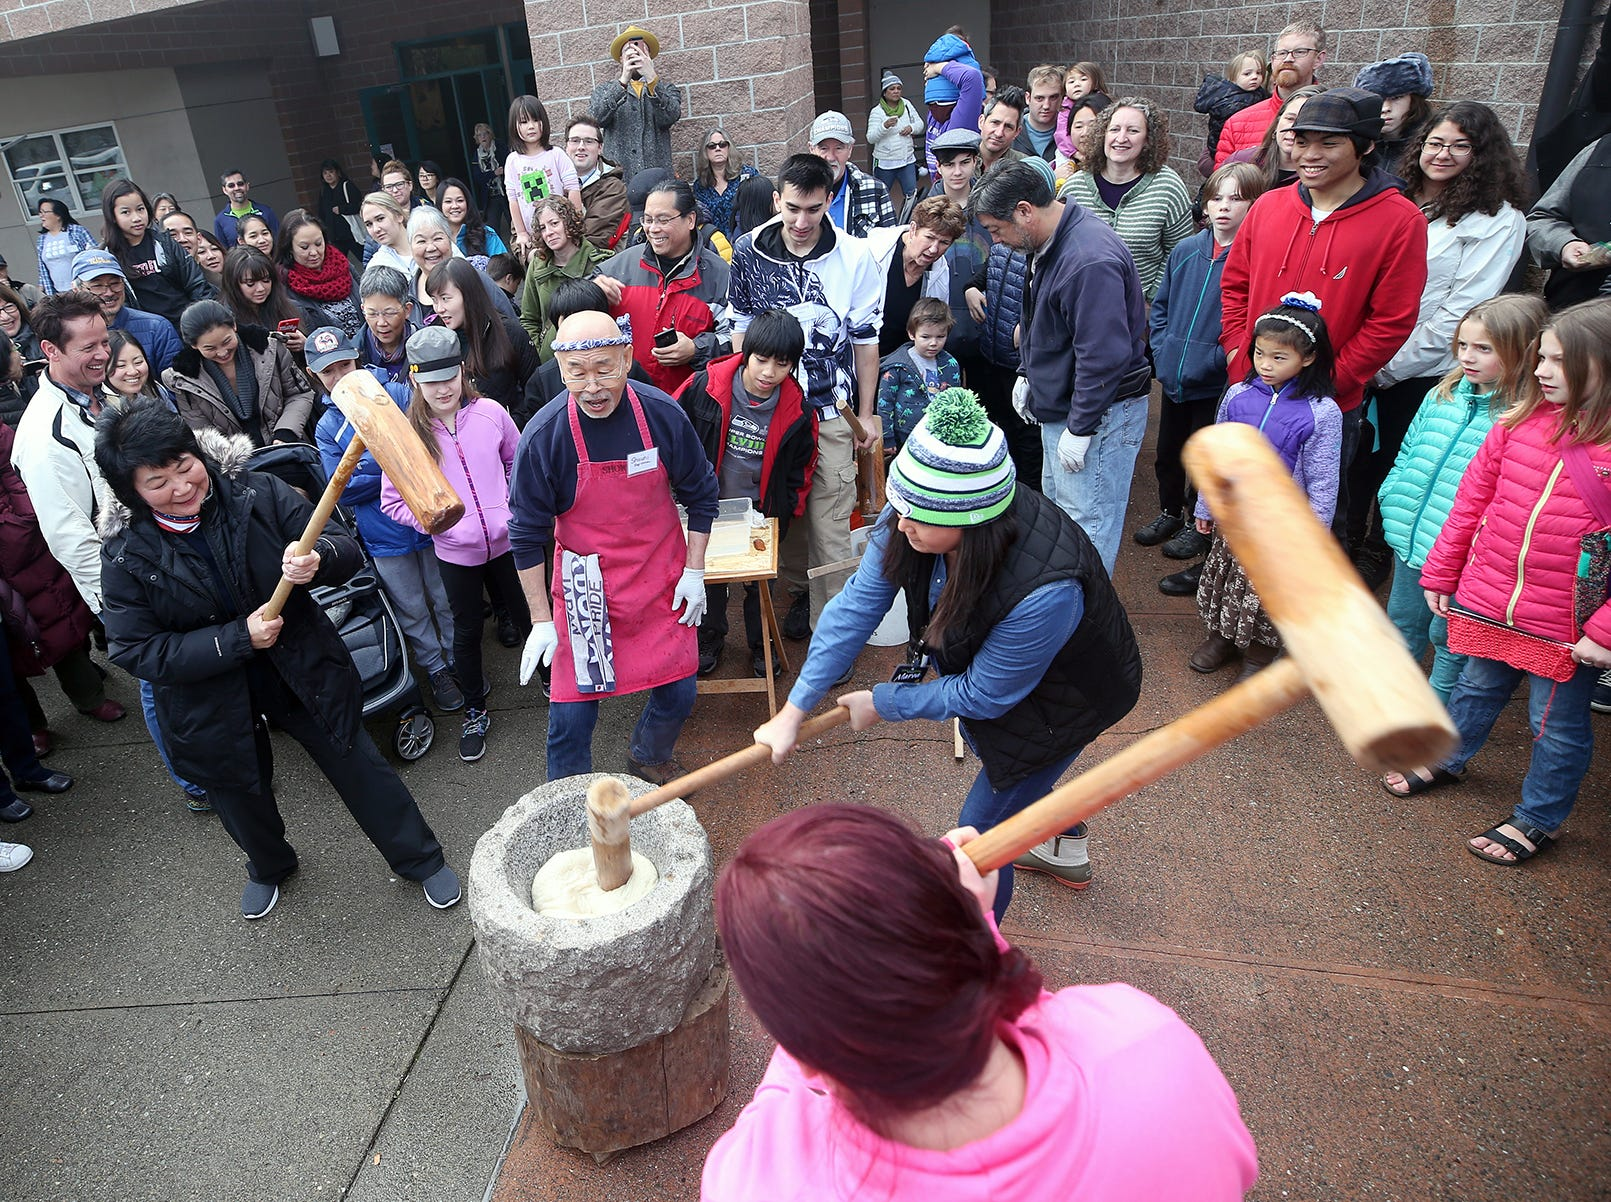 The 30th anniversary of Bainbridge Island's Japanese-American Mochi Tsuki celebration was held at an new location at the Woodward Middle School on Saturday, January, 5, 2019. Mochi Tsuki is a traditional Japanese New Year's tradition of steaming rice and pounding into a rice cake.